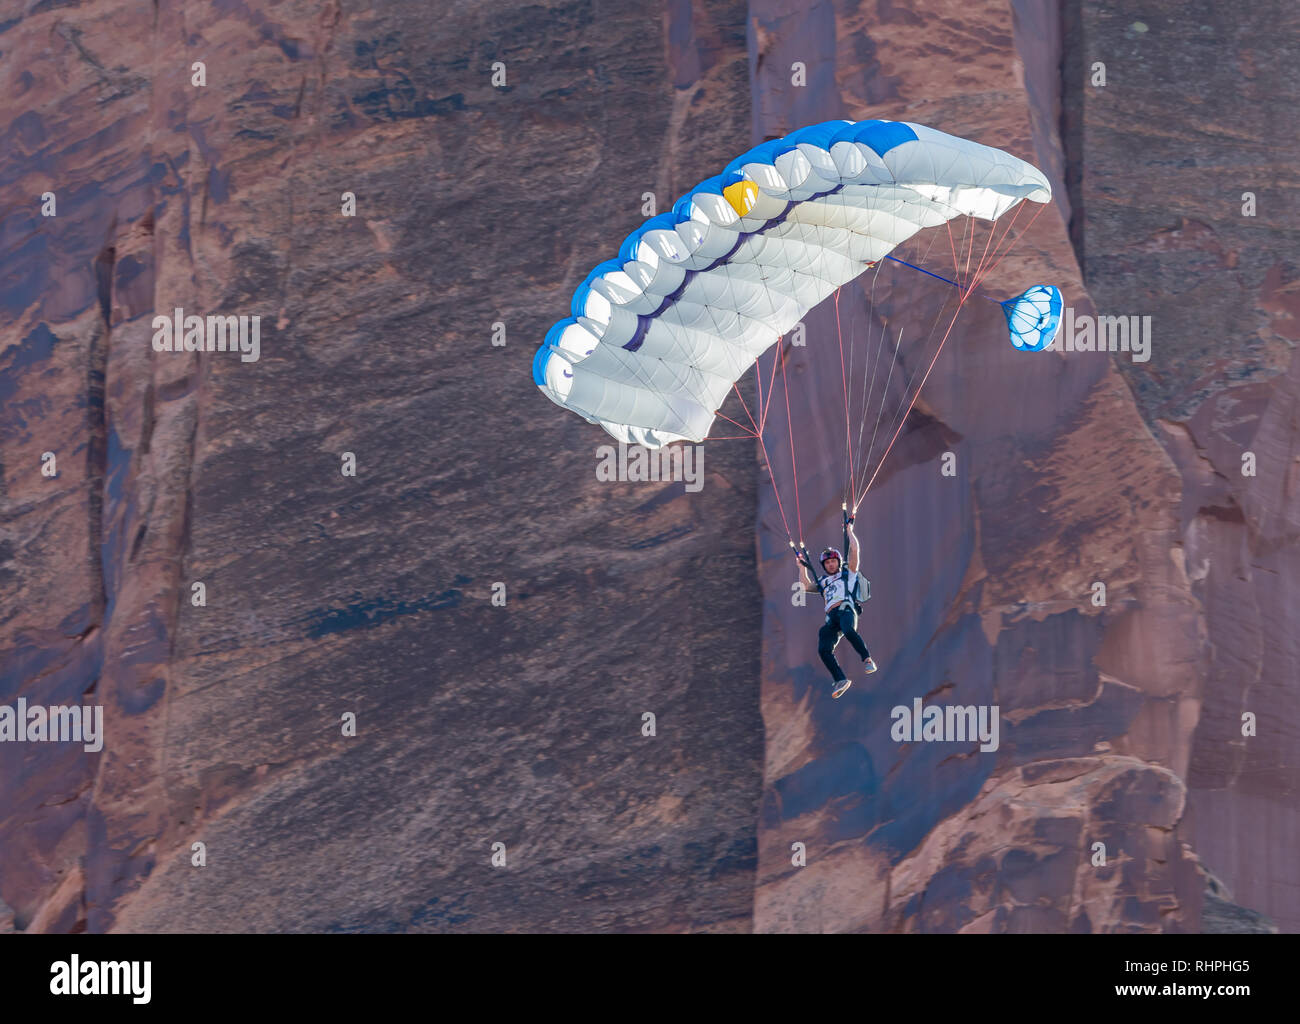 Tim Sosebee BASE Jumping near Moab Utah - Stock Image